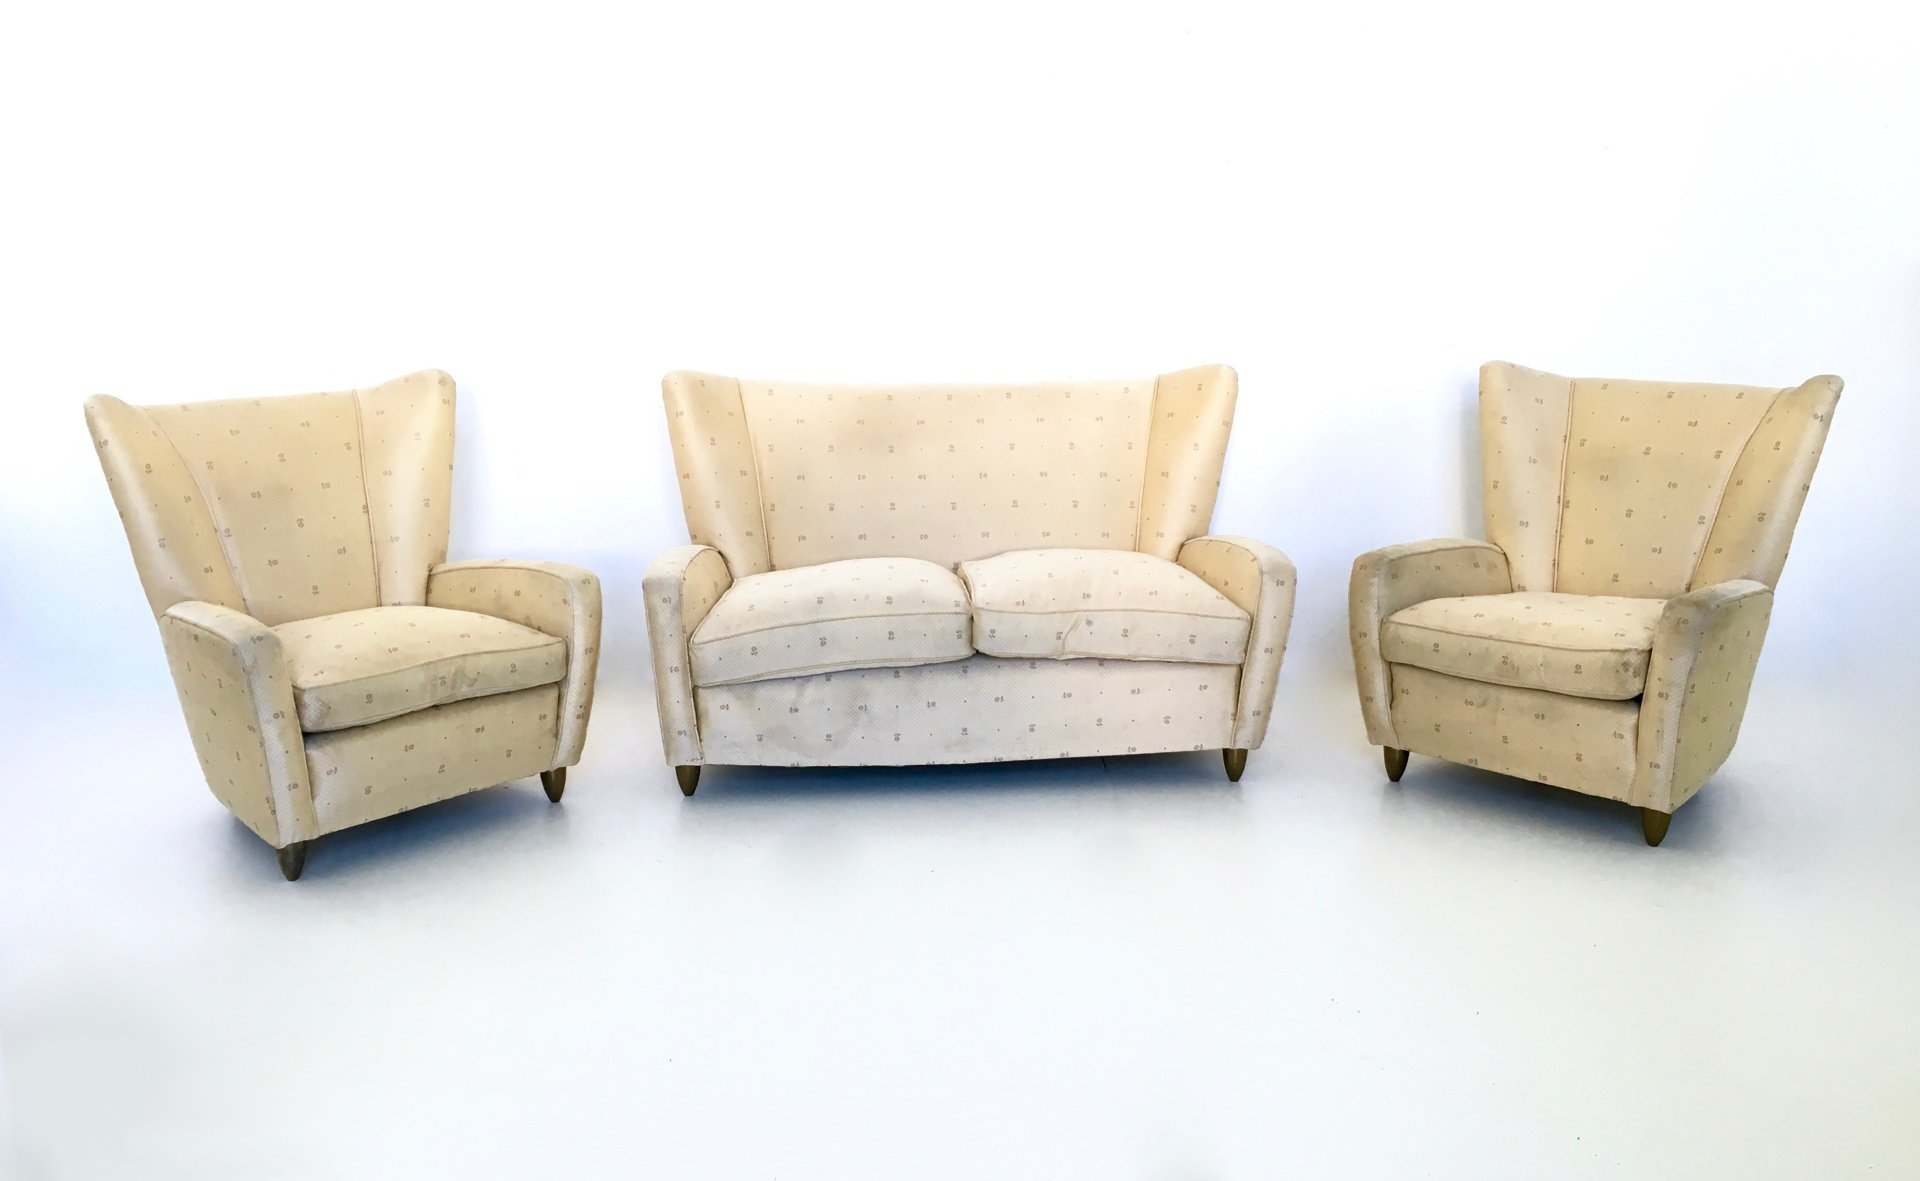 italian living room set by paolo buffa 1950s for sale at pamono. Black Bedroom Furniture Sets. Home Design Ideas